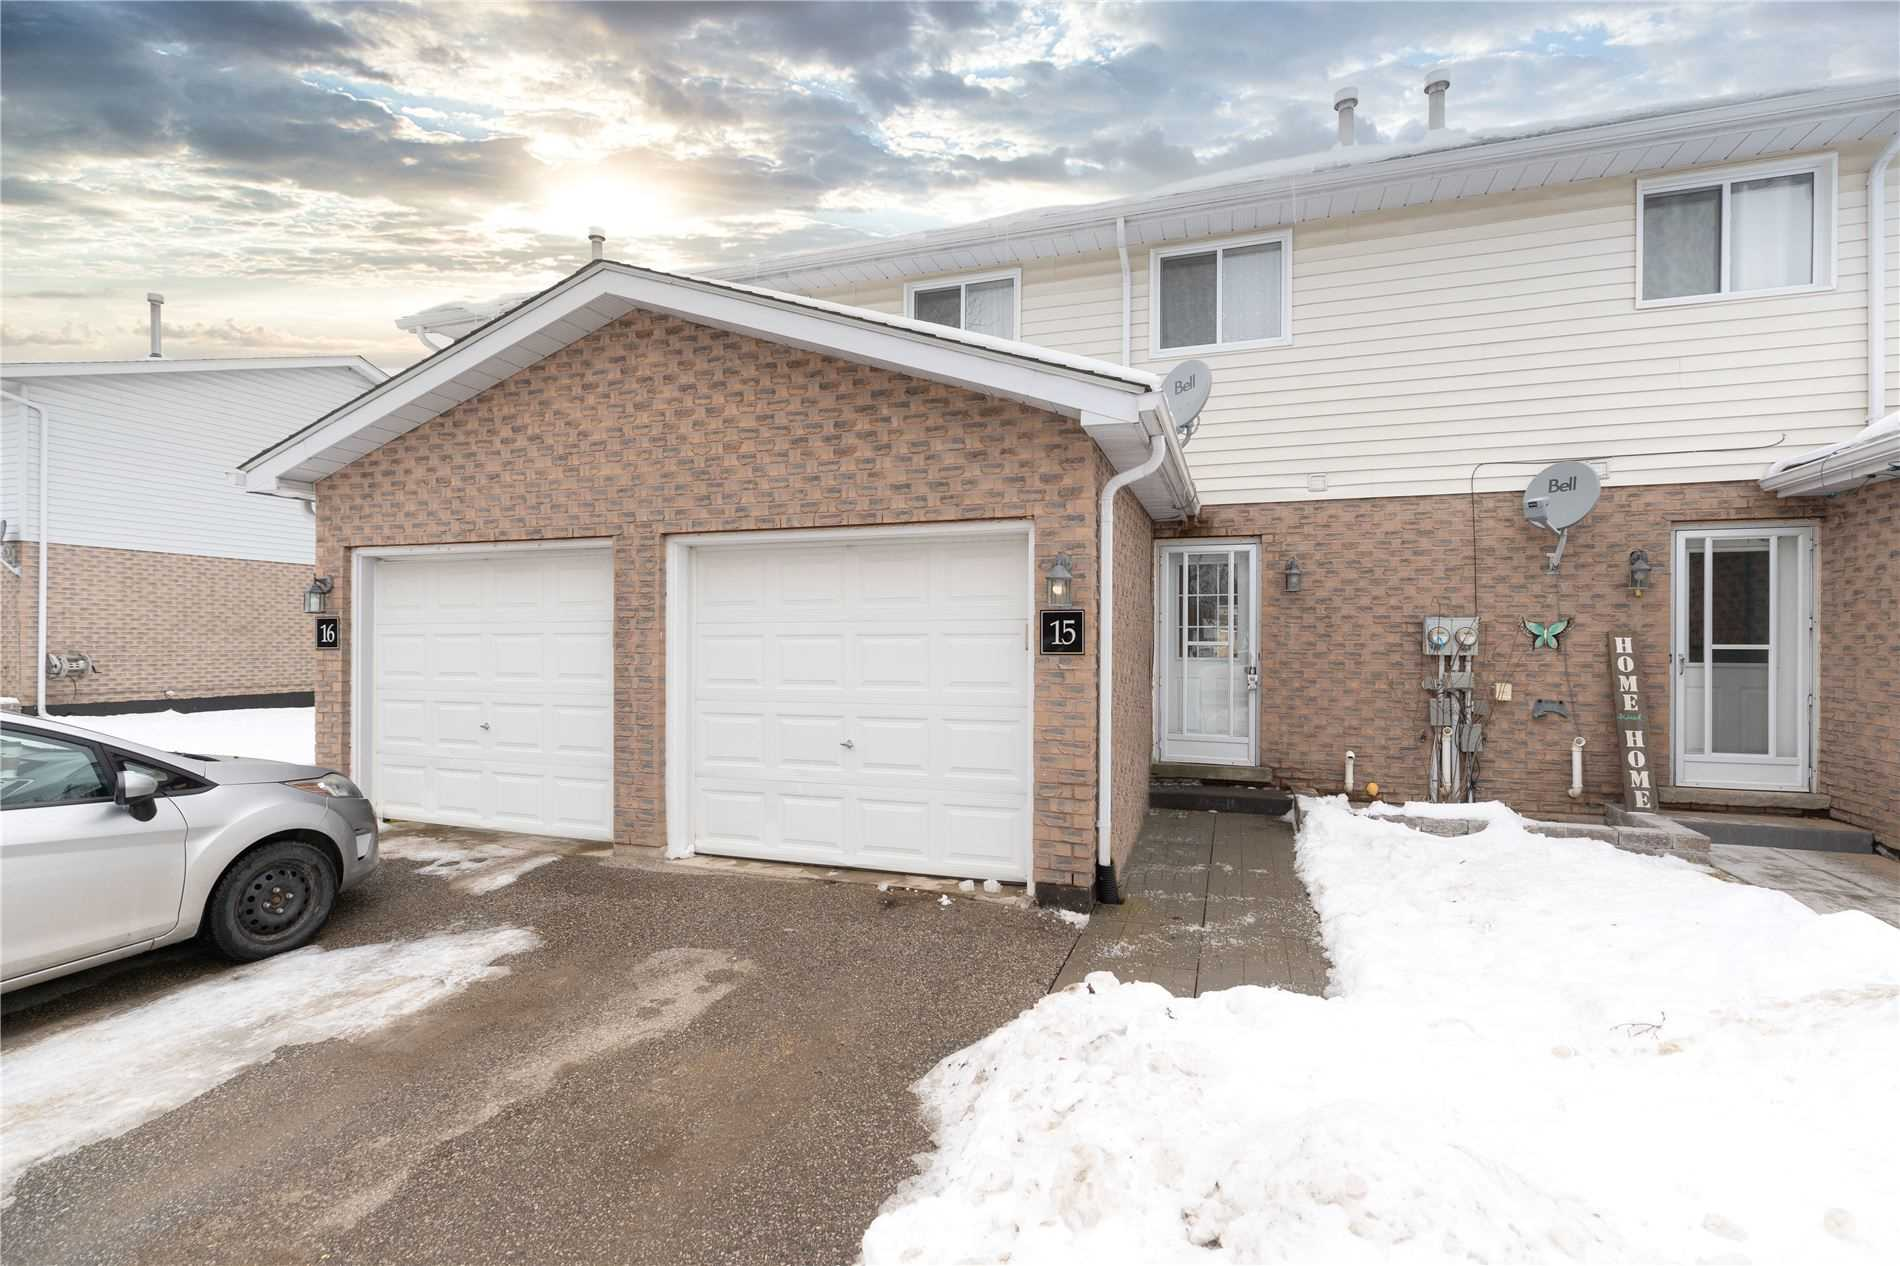 pictures of house for sale MLS: S5083677 located at 325 West St N, Orillia L3V7P4